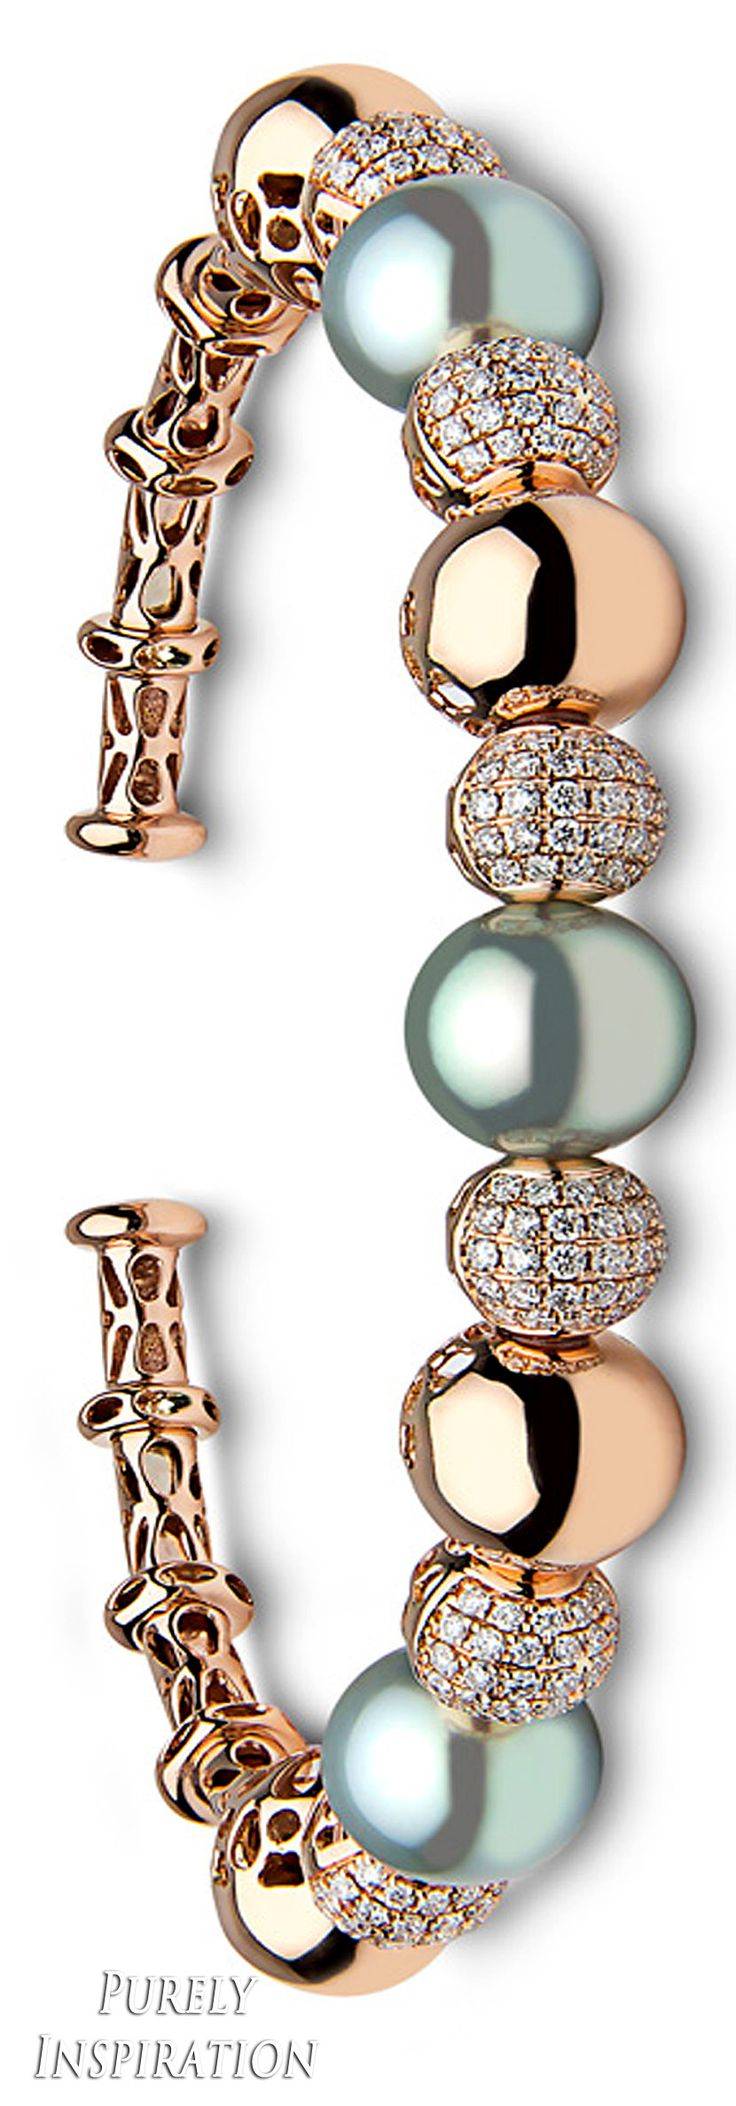 Yoko London Blue Rose Bracelet 18k rose gold, diamonds, golden Tahitian pearls | Purely Inspiratio